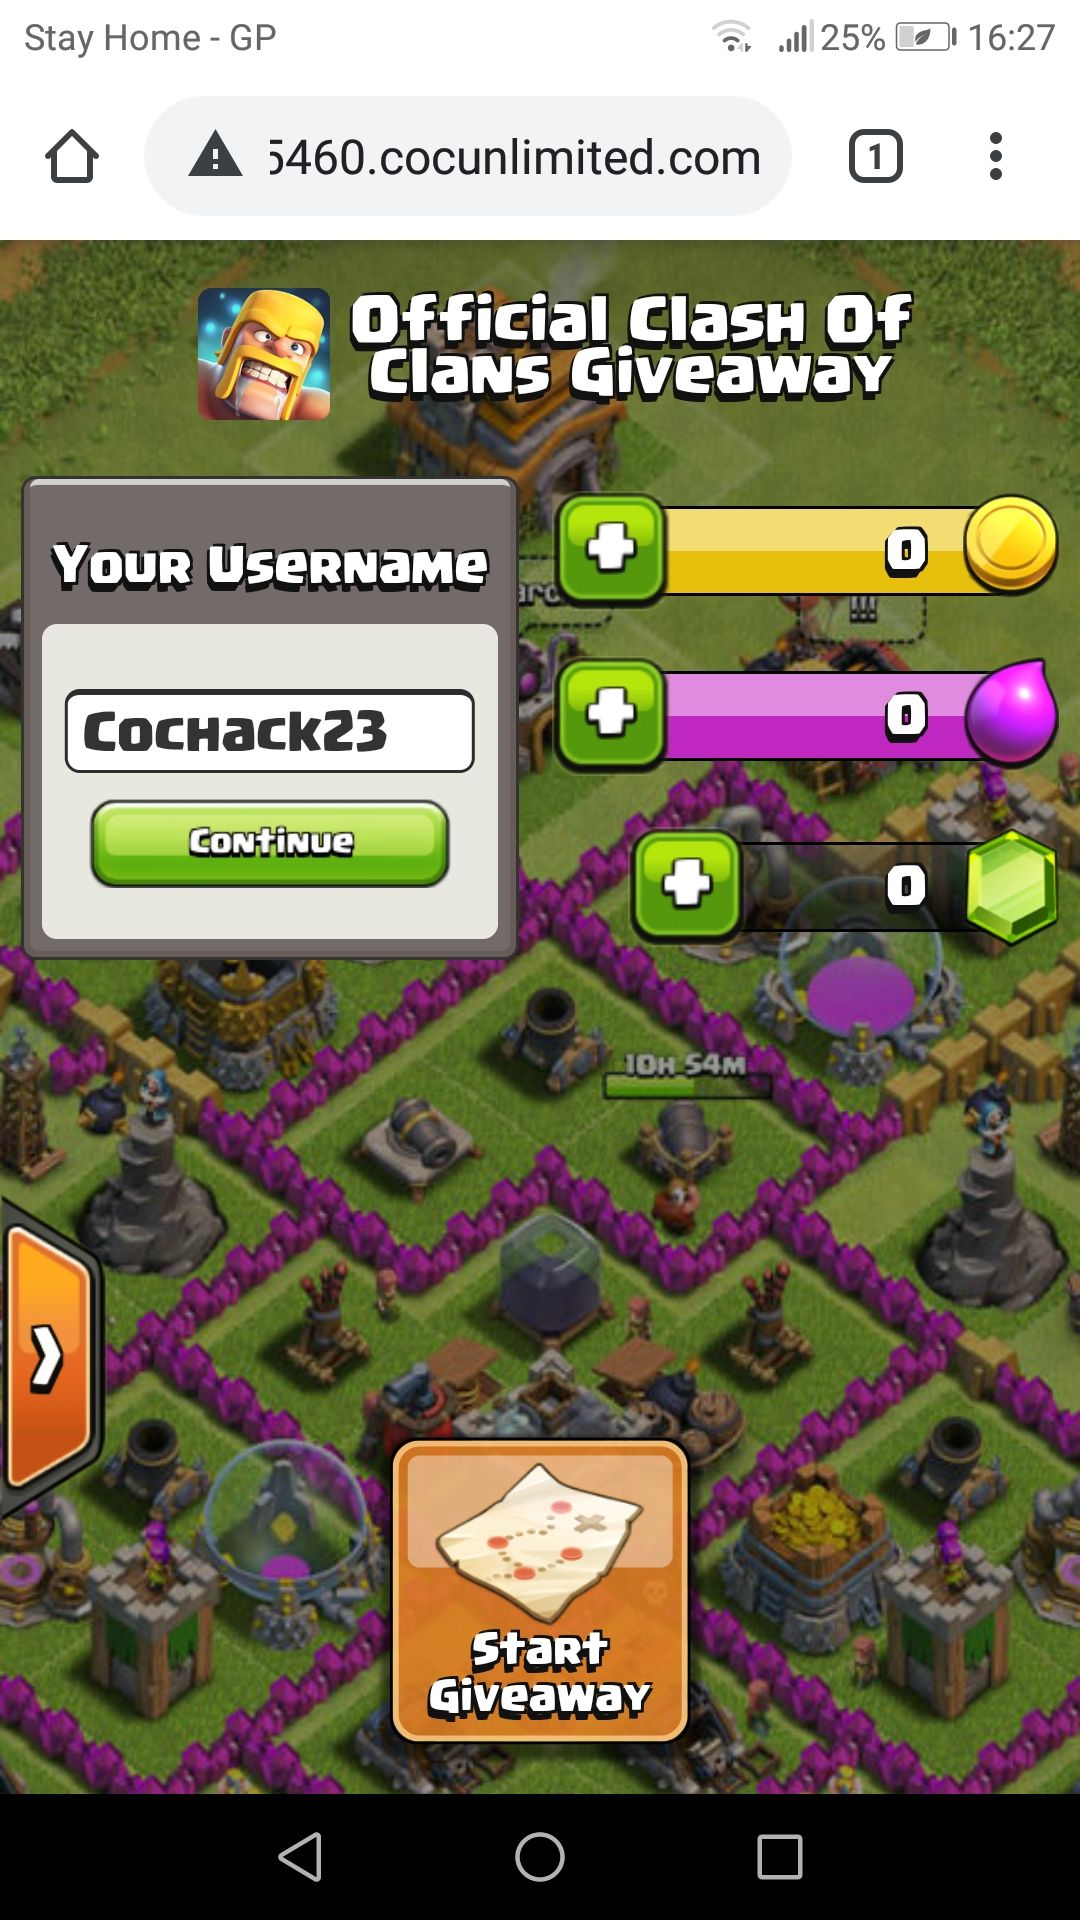 Free Gems For Clash Of Clans Hack No Survey And No Human Verification 2020 In 2020 Clash Of Clans Clash Of Clans Gems Clash Of Clans Hack